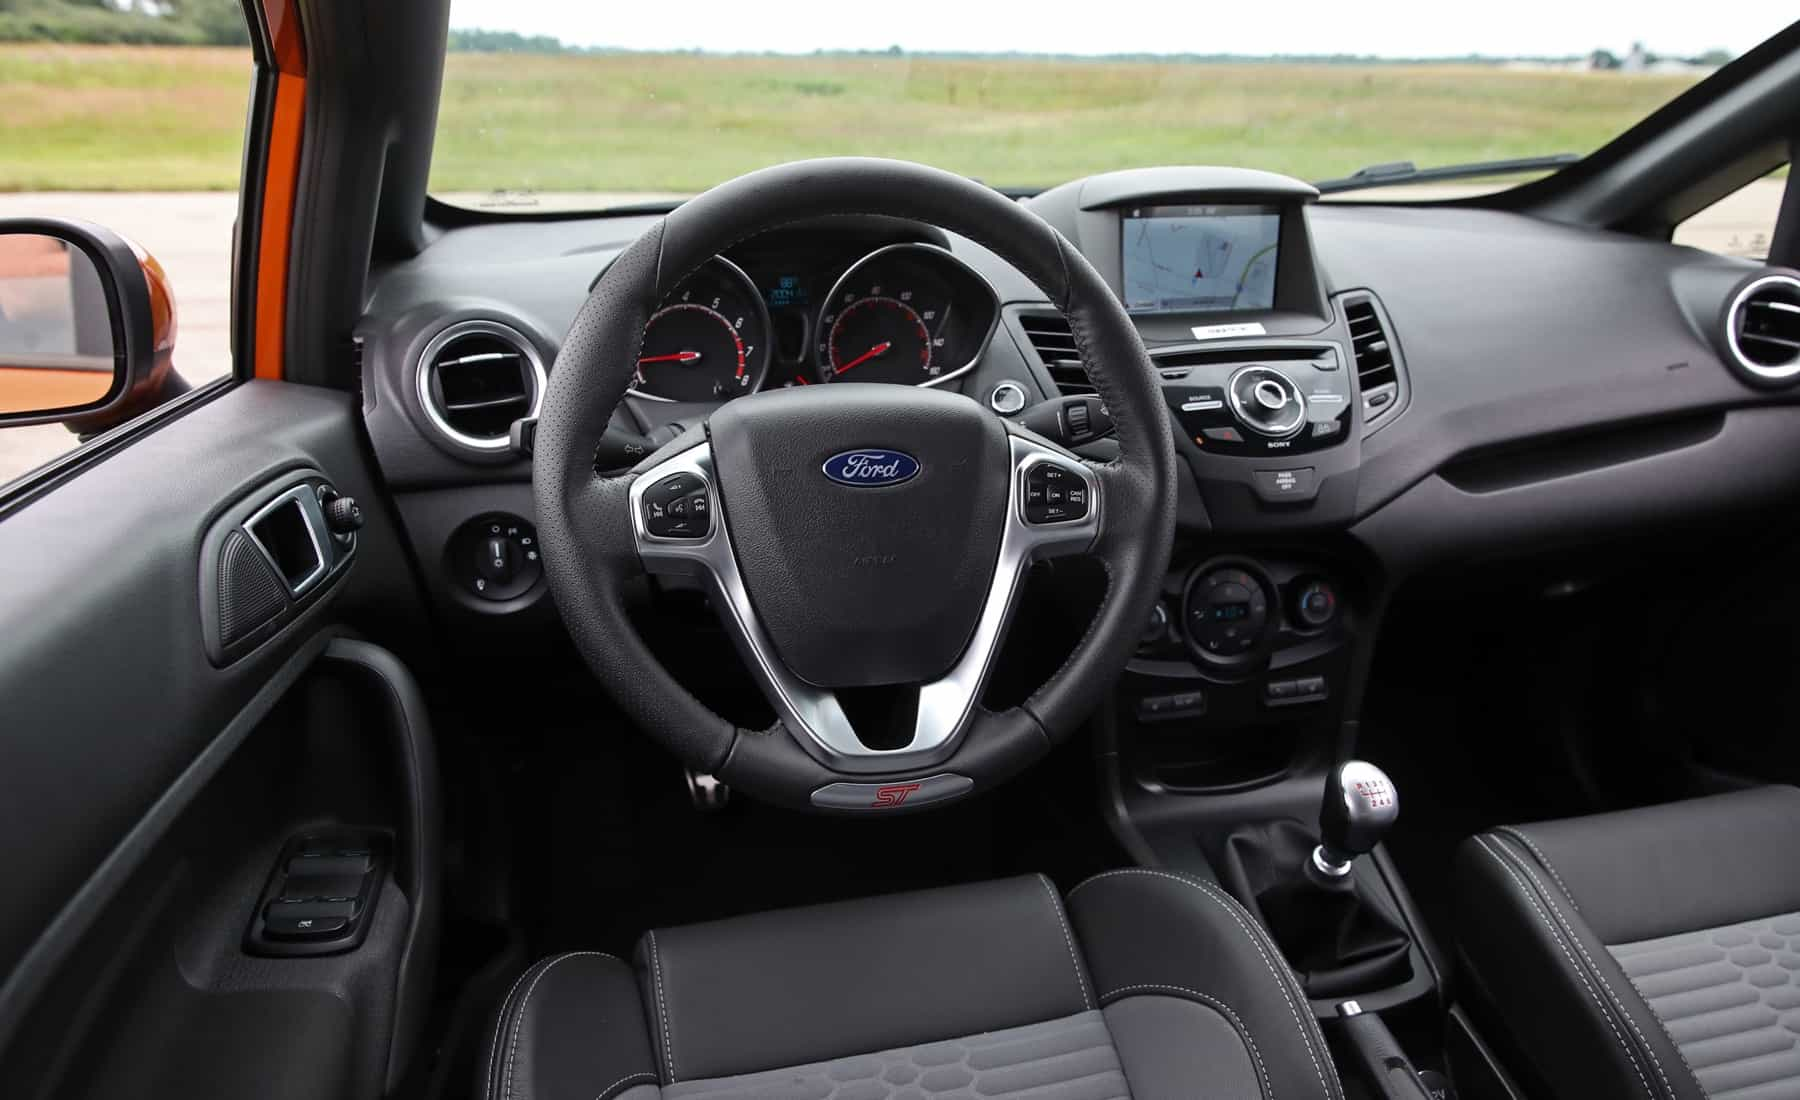 2017 Ford Fiesta ST Interior View Steering And Dashboard (Photo 34 of 47)